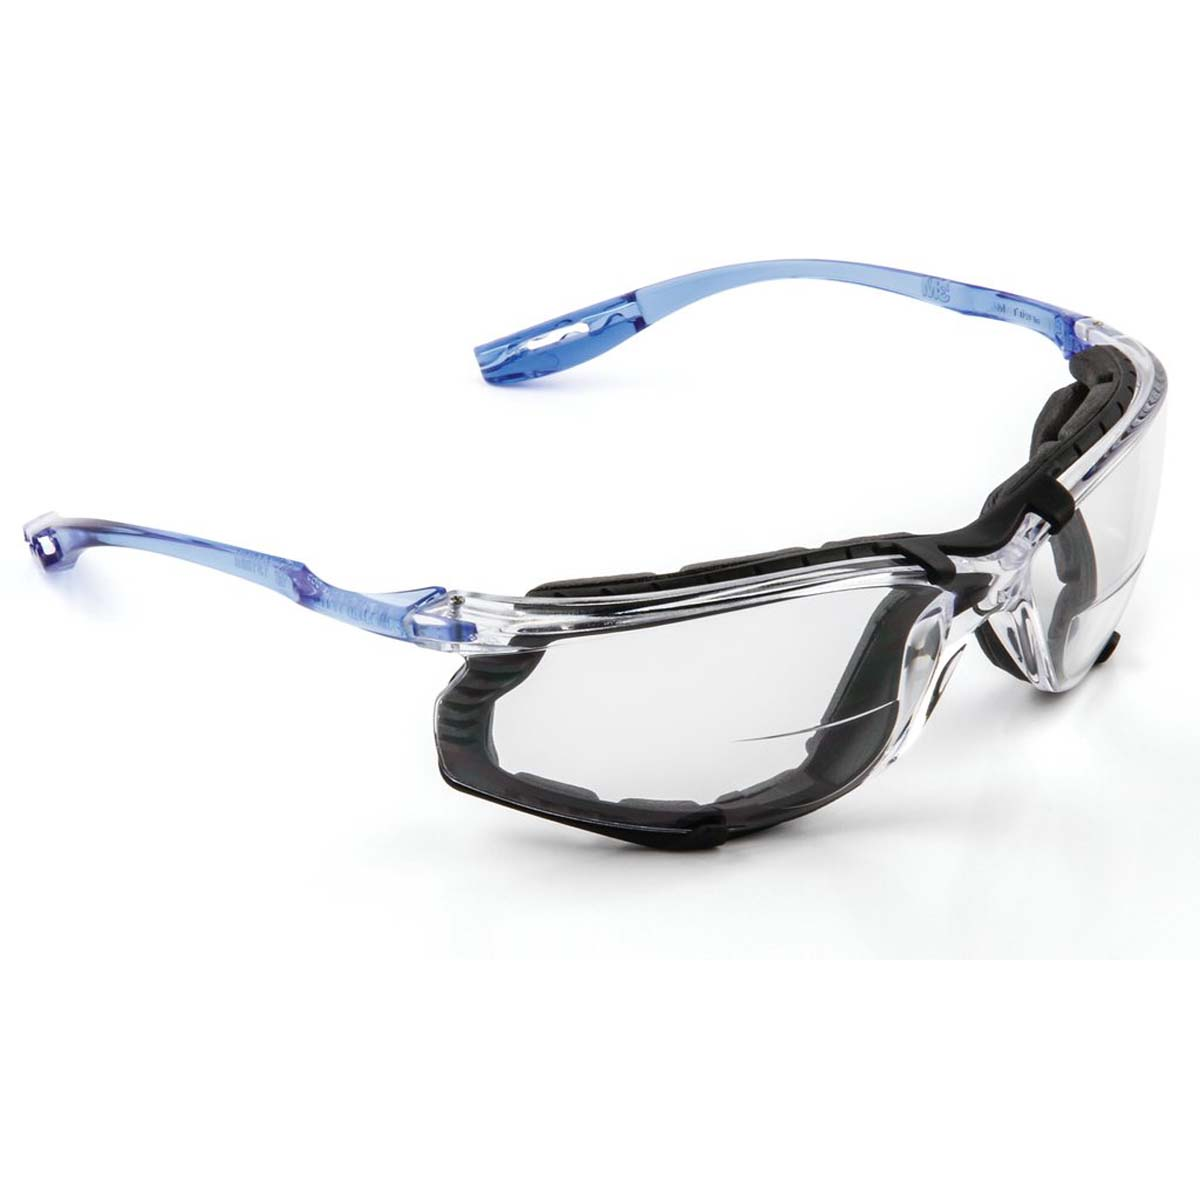 "3Mâ""¢ Virtuaâ""¢ CCS Protective Eyewear with Foam Gasket, VC215AF Clear +1.5D Anti-Fog Lens,"